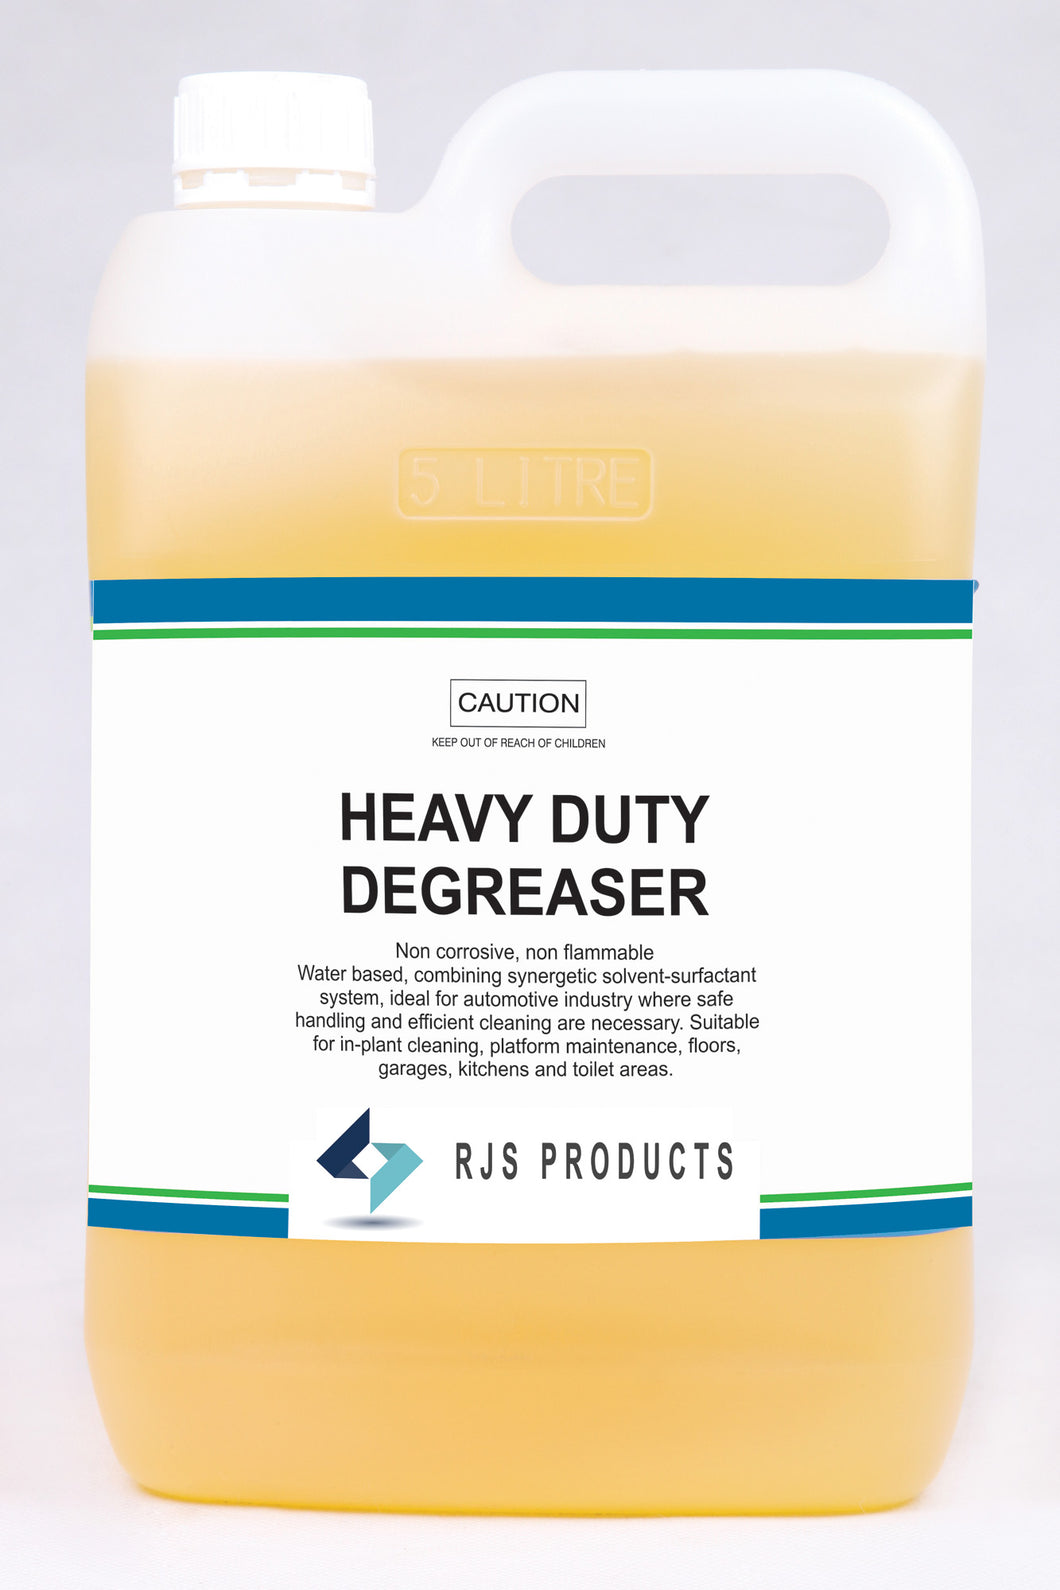 Heavy Duty Degreaser - Water Based Enviro Friendly